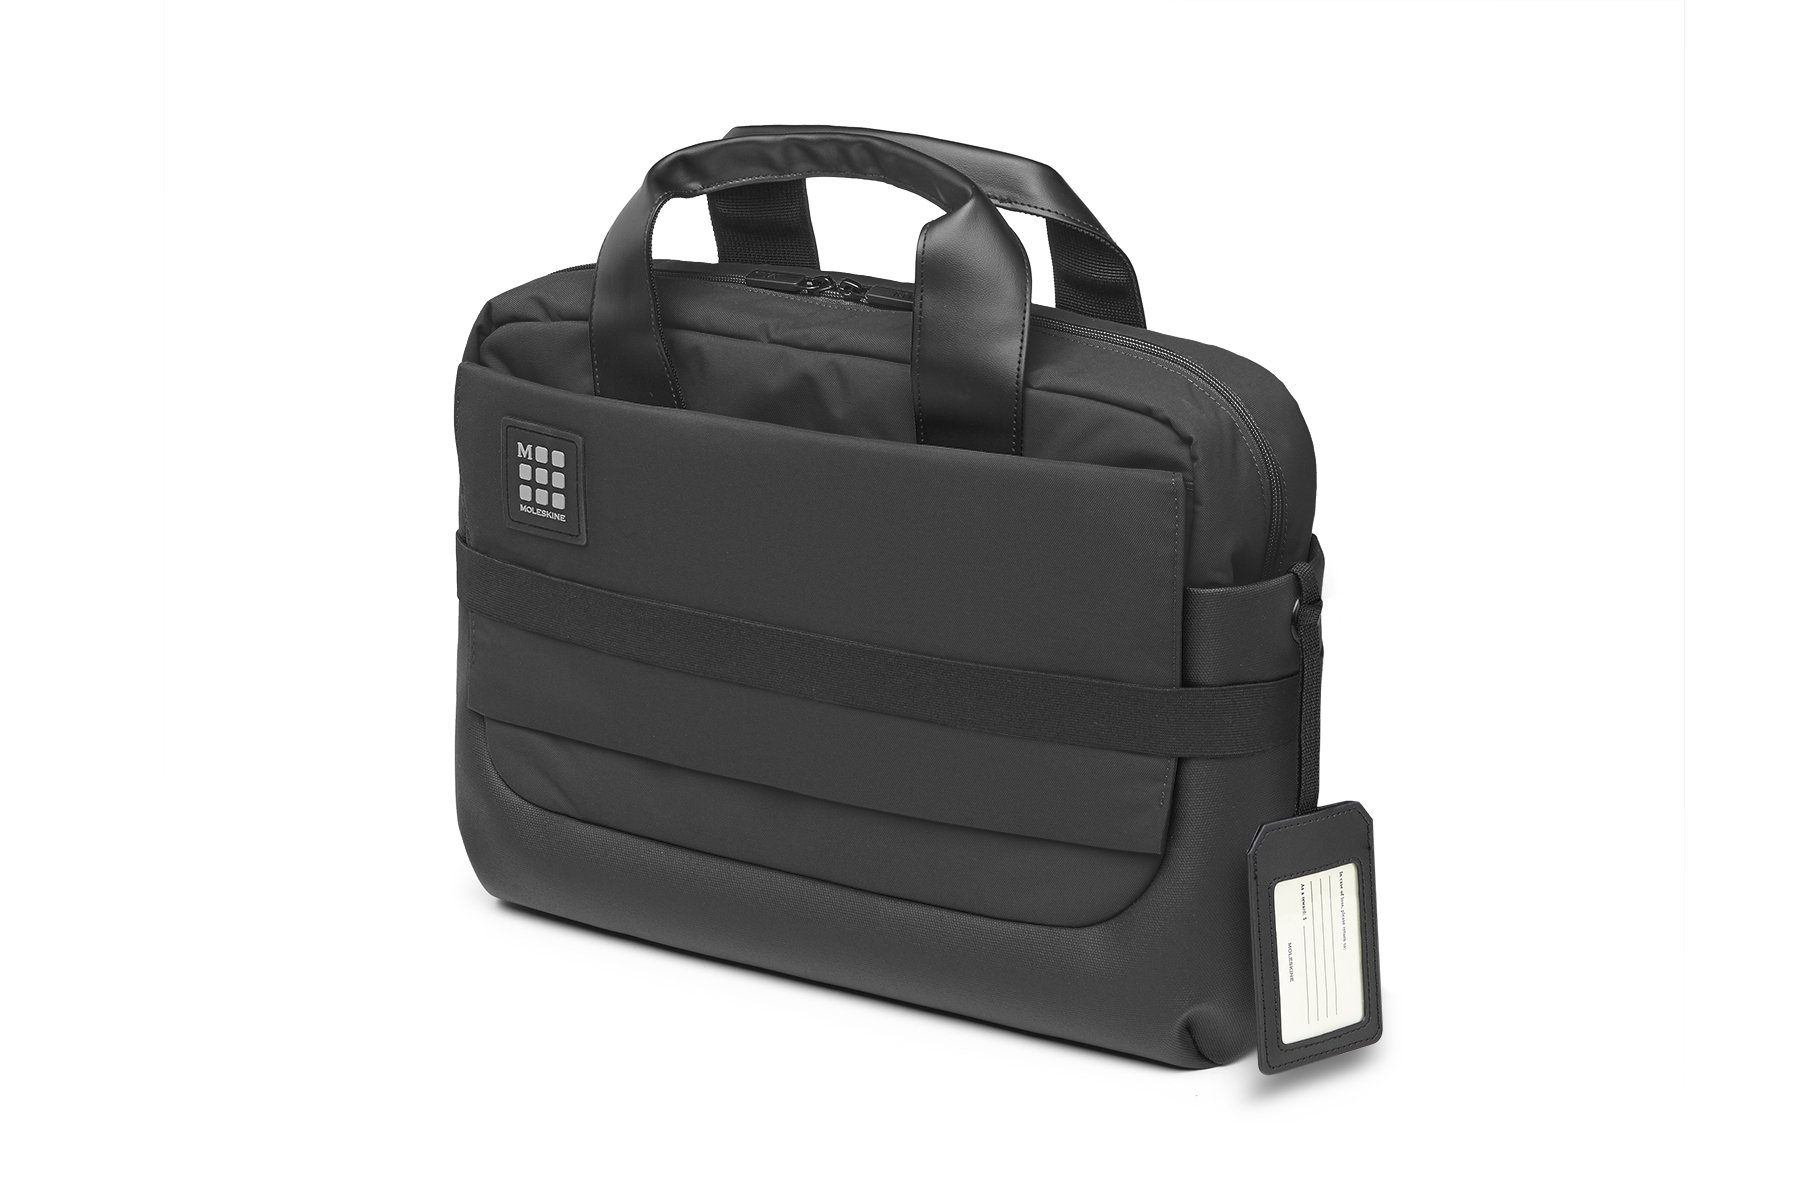 Moleskine ID Briefcase, Black